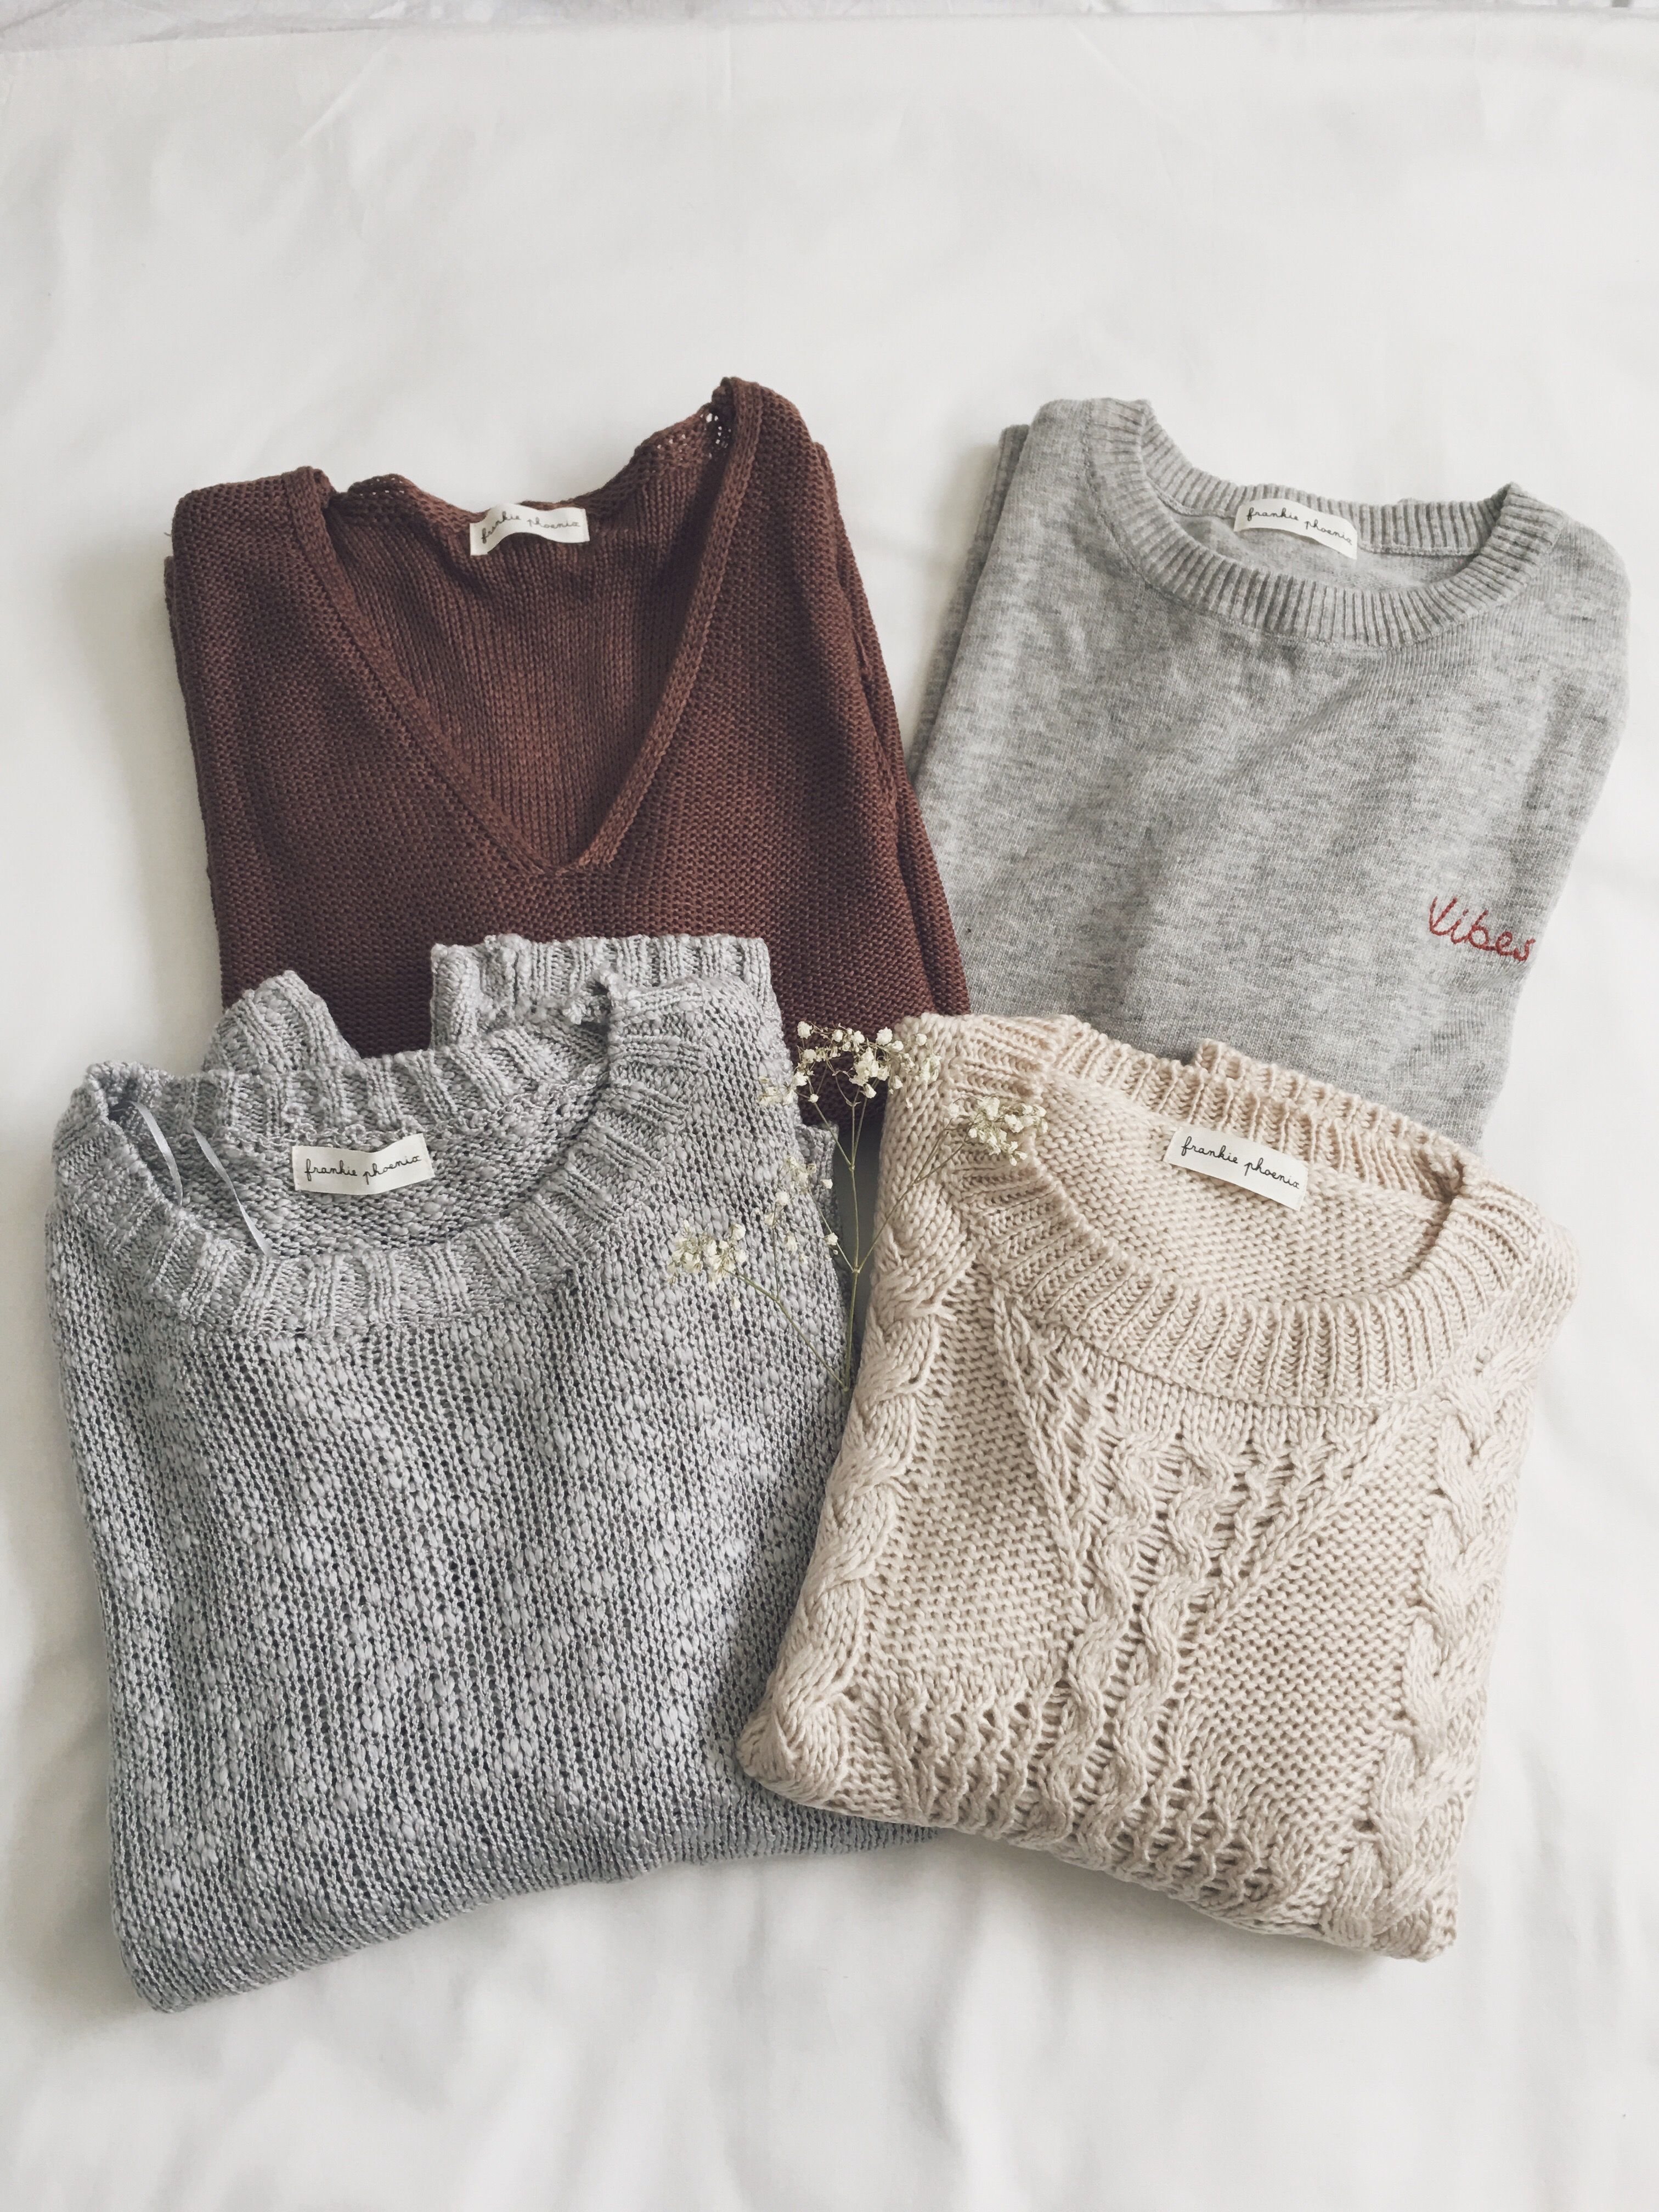 As a firm believer that one can never have enough sweaters 107869366